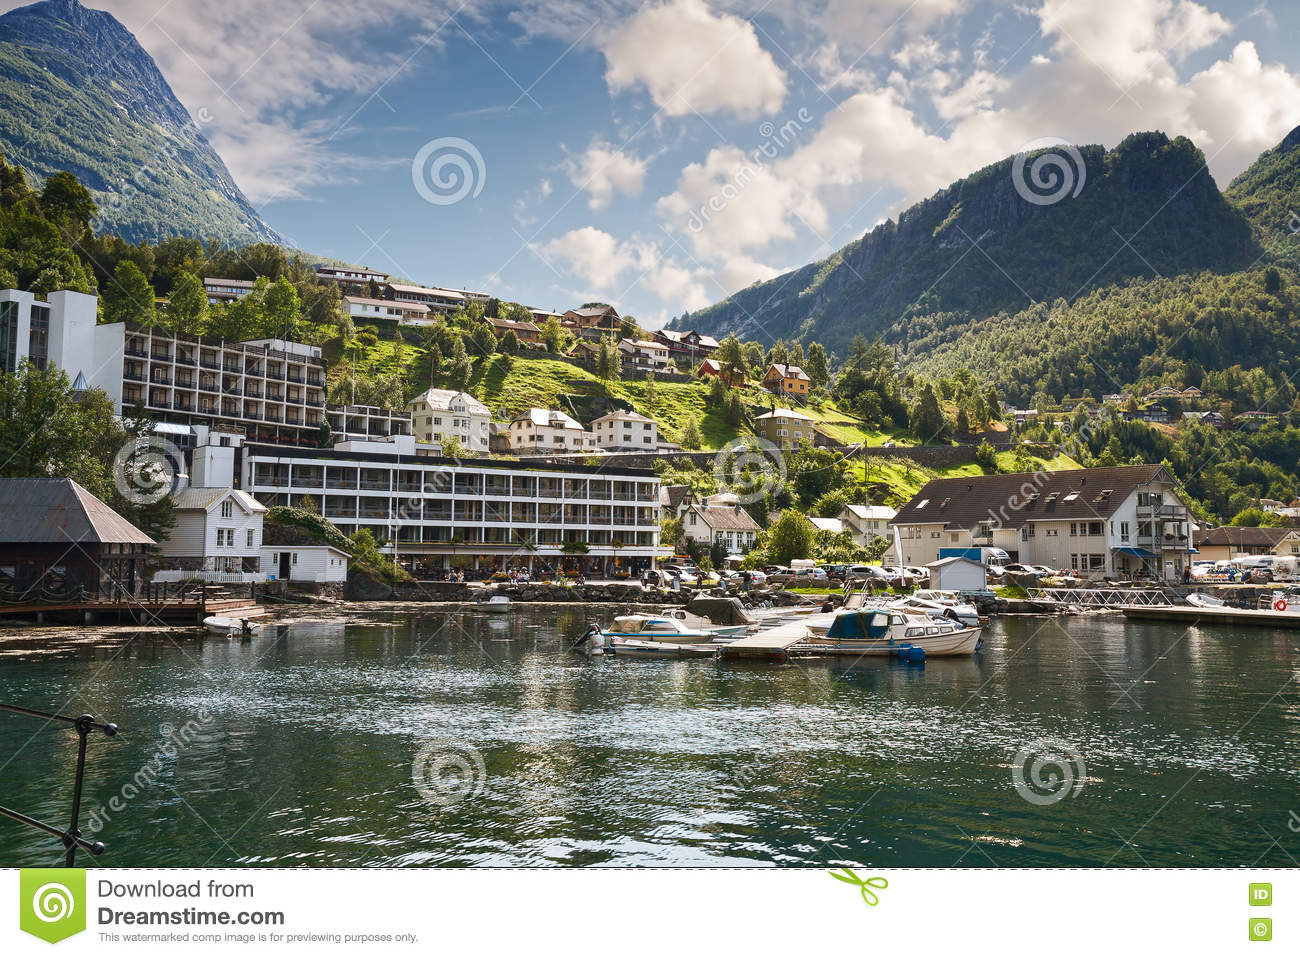 Geirangerfjord clipart #18, Download drawings